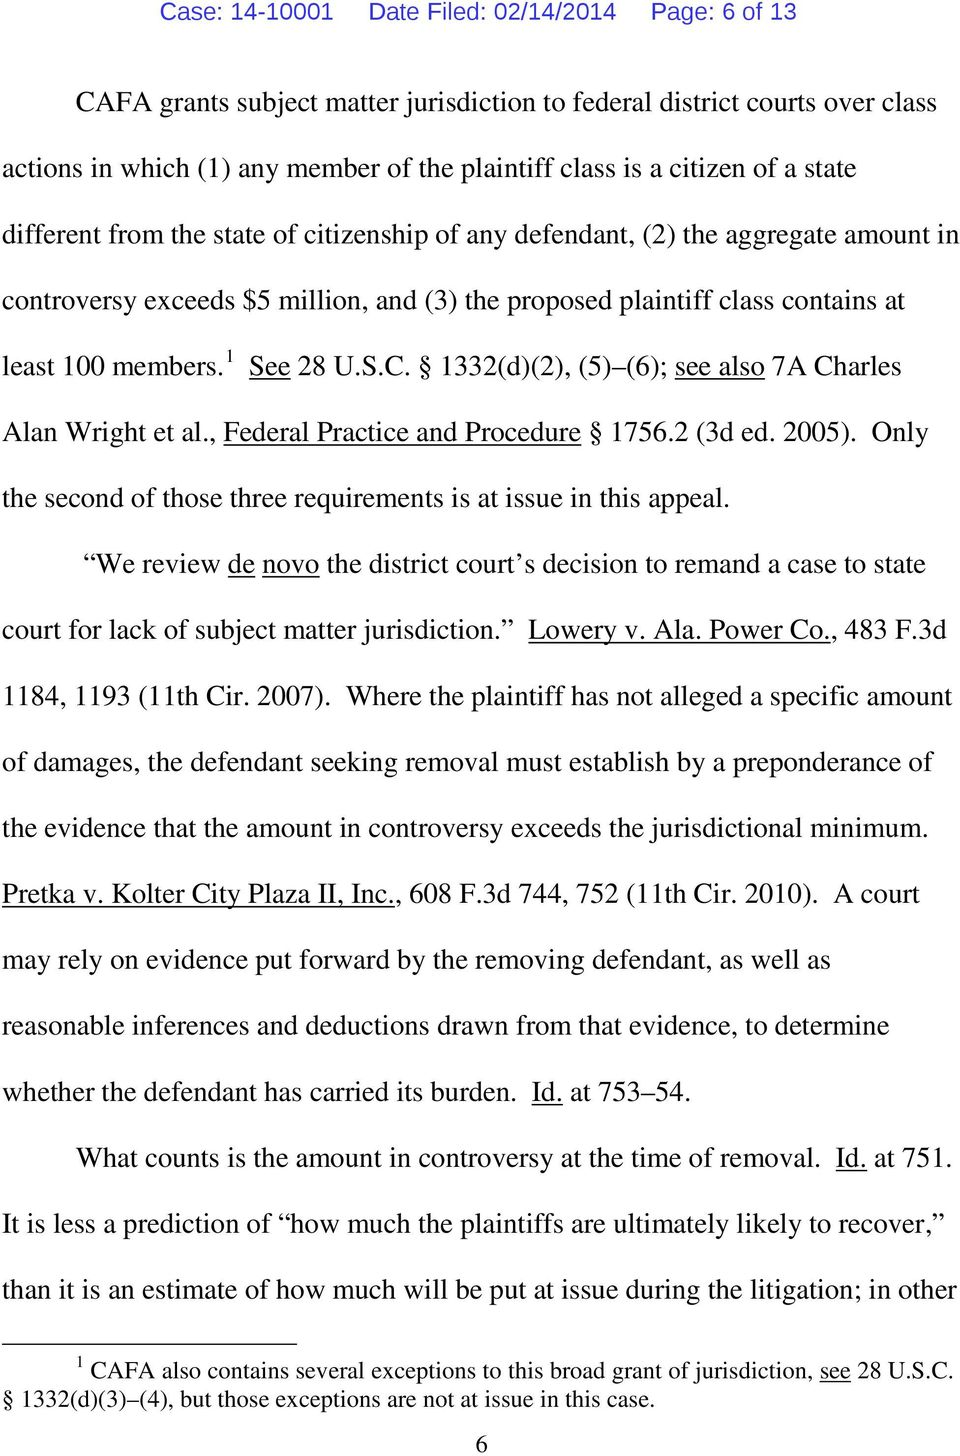 1 See 28 U.S.C. 1332(d)(2), (5) (6); see also 7A Charles Alan Wright et al., Federal Practice and Procedure 1756.2 (3d ed. 2005).